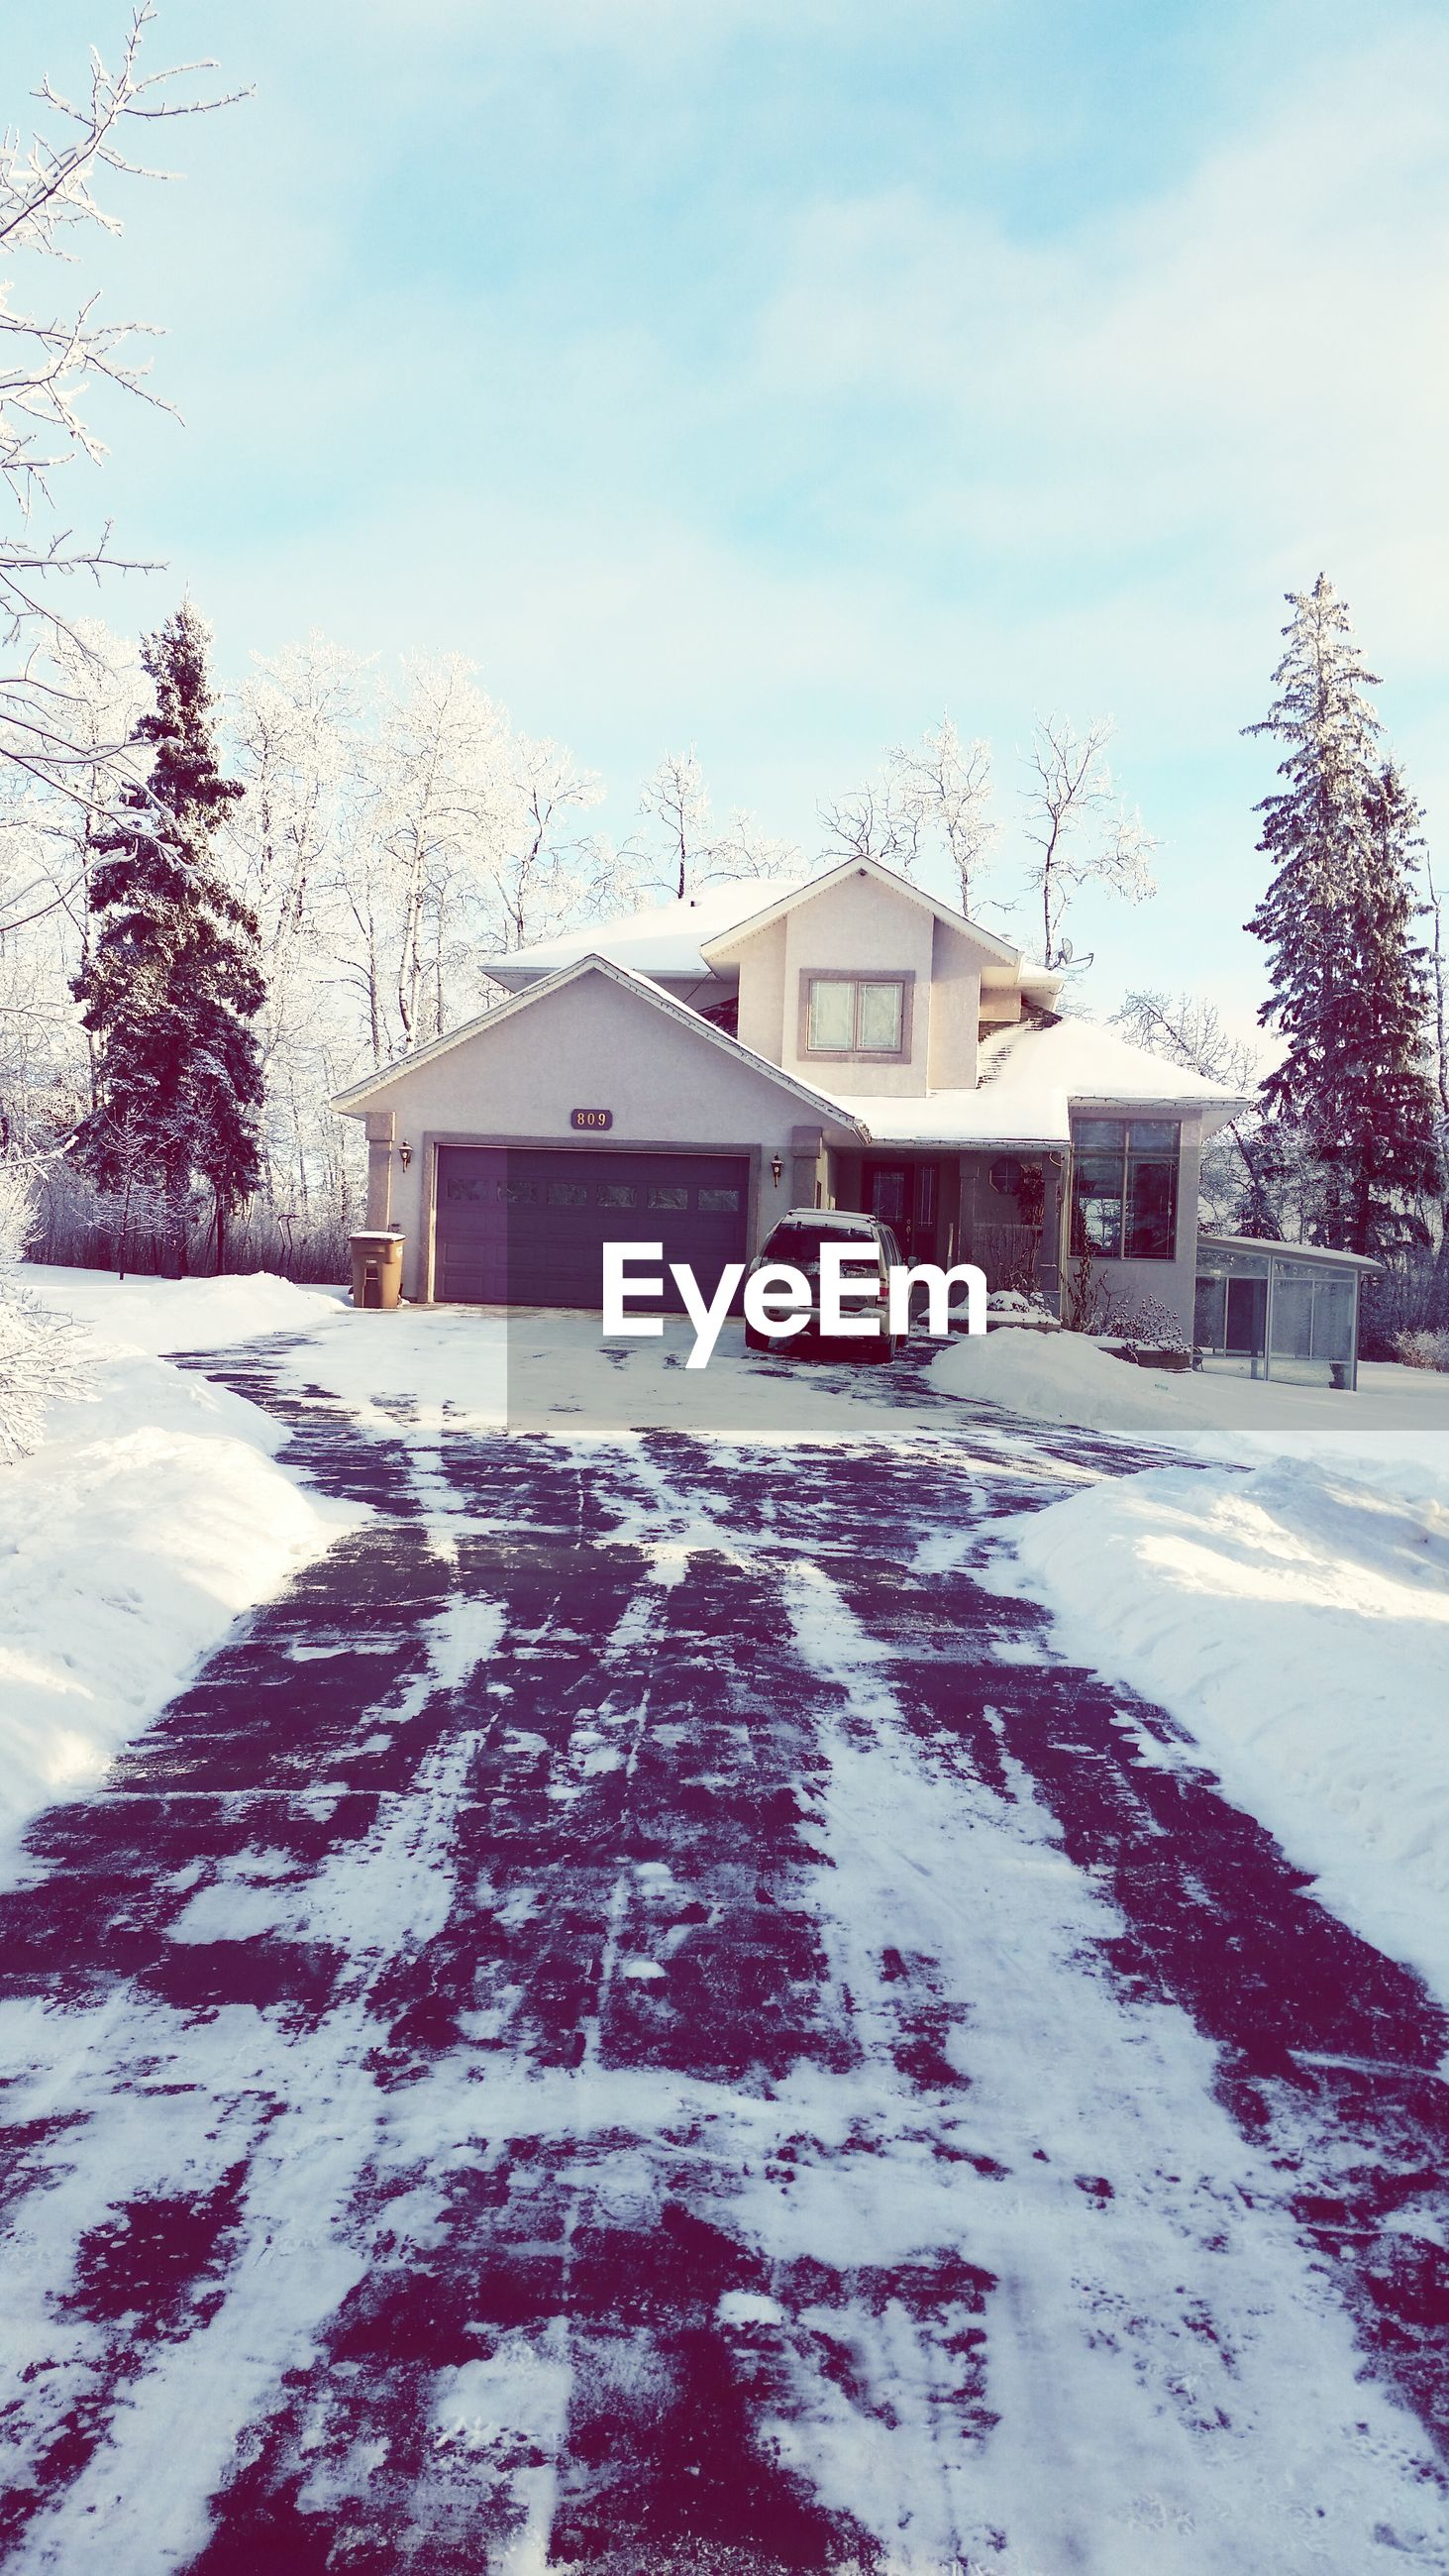 building exterior, architecture, built structure, house, sky, tree, snow, winter, residential structure, residential building, cold temperature, sunlight, day, bare tree, roof, outdoors, weather, no people, nature, season